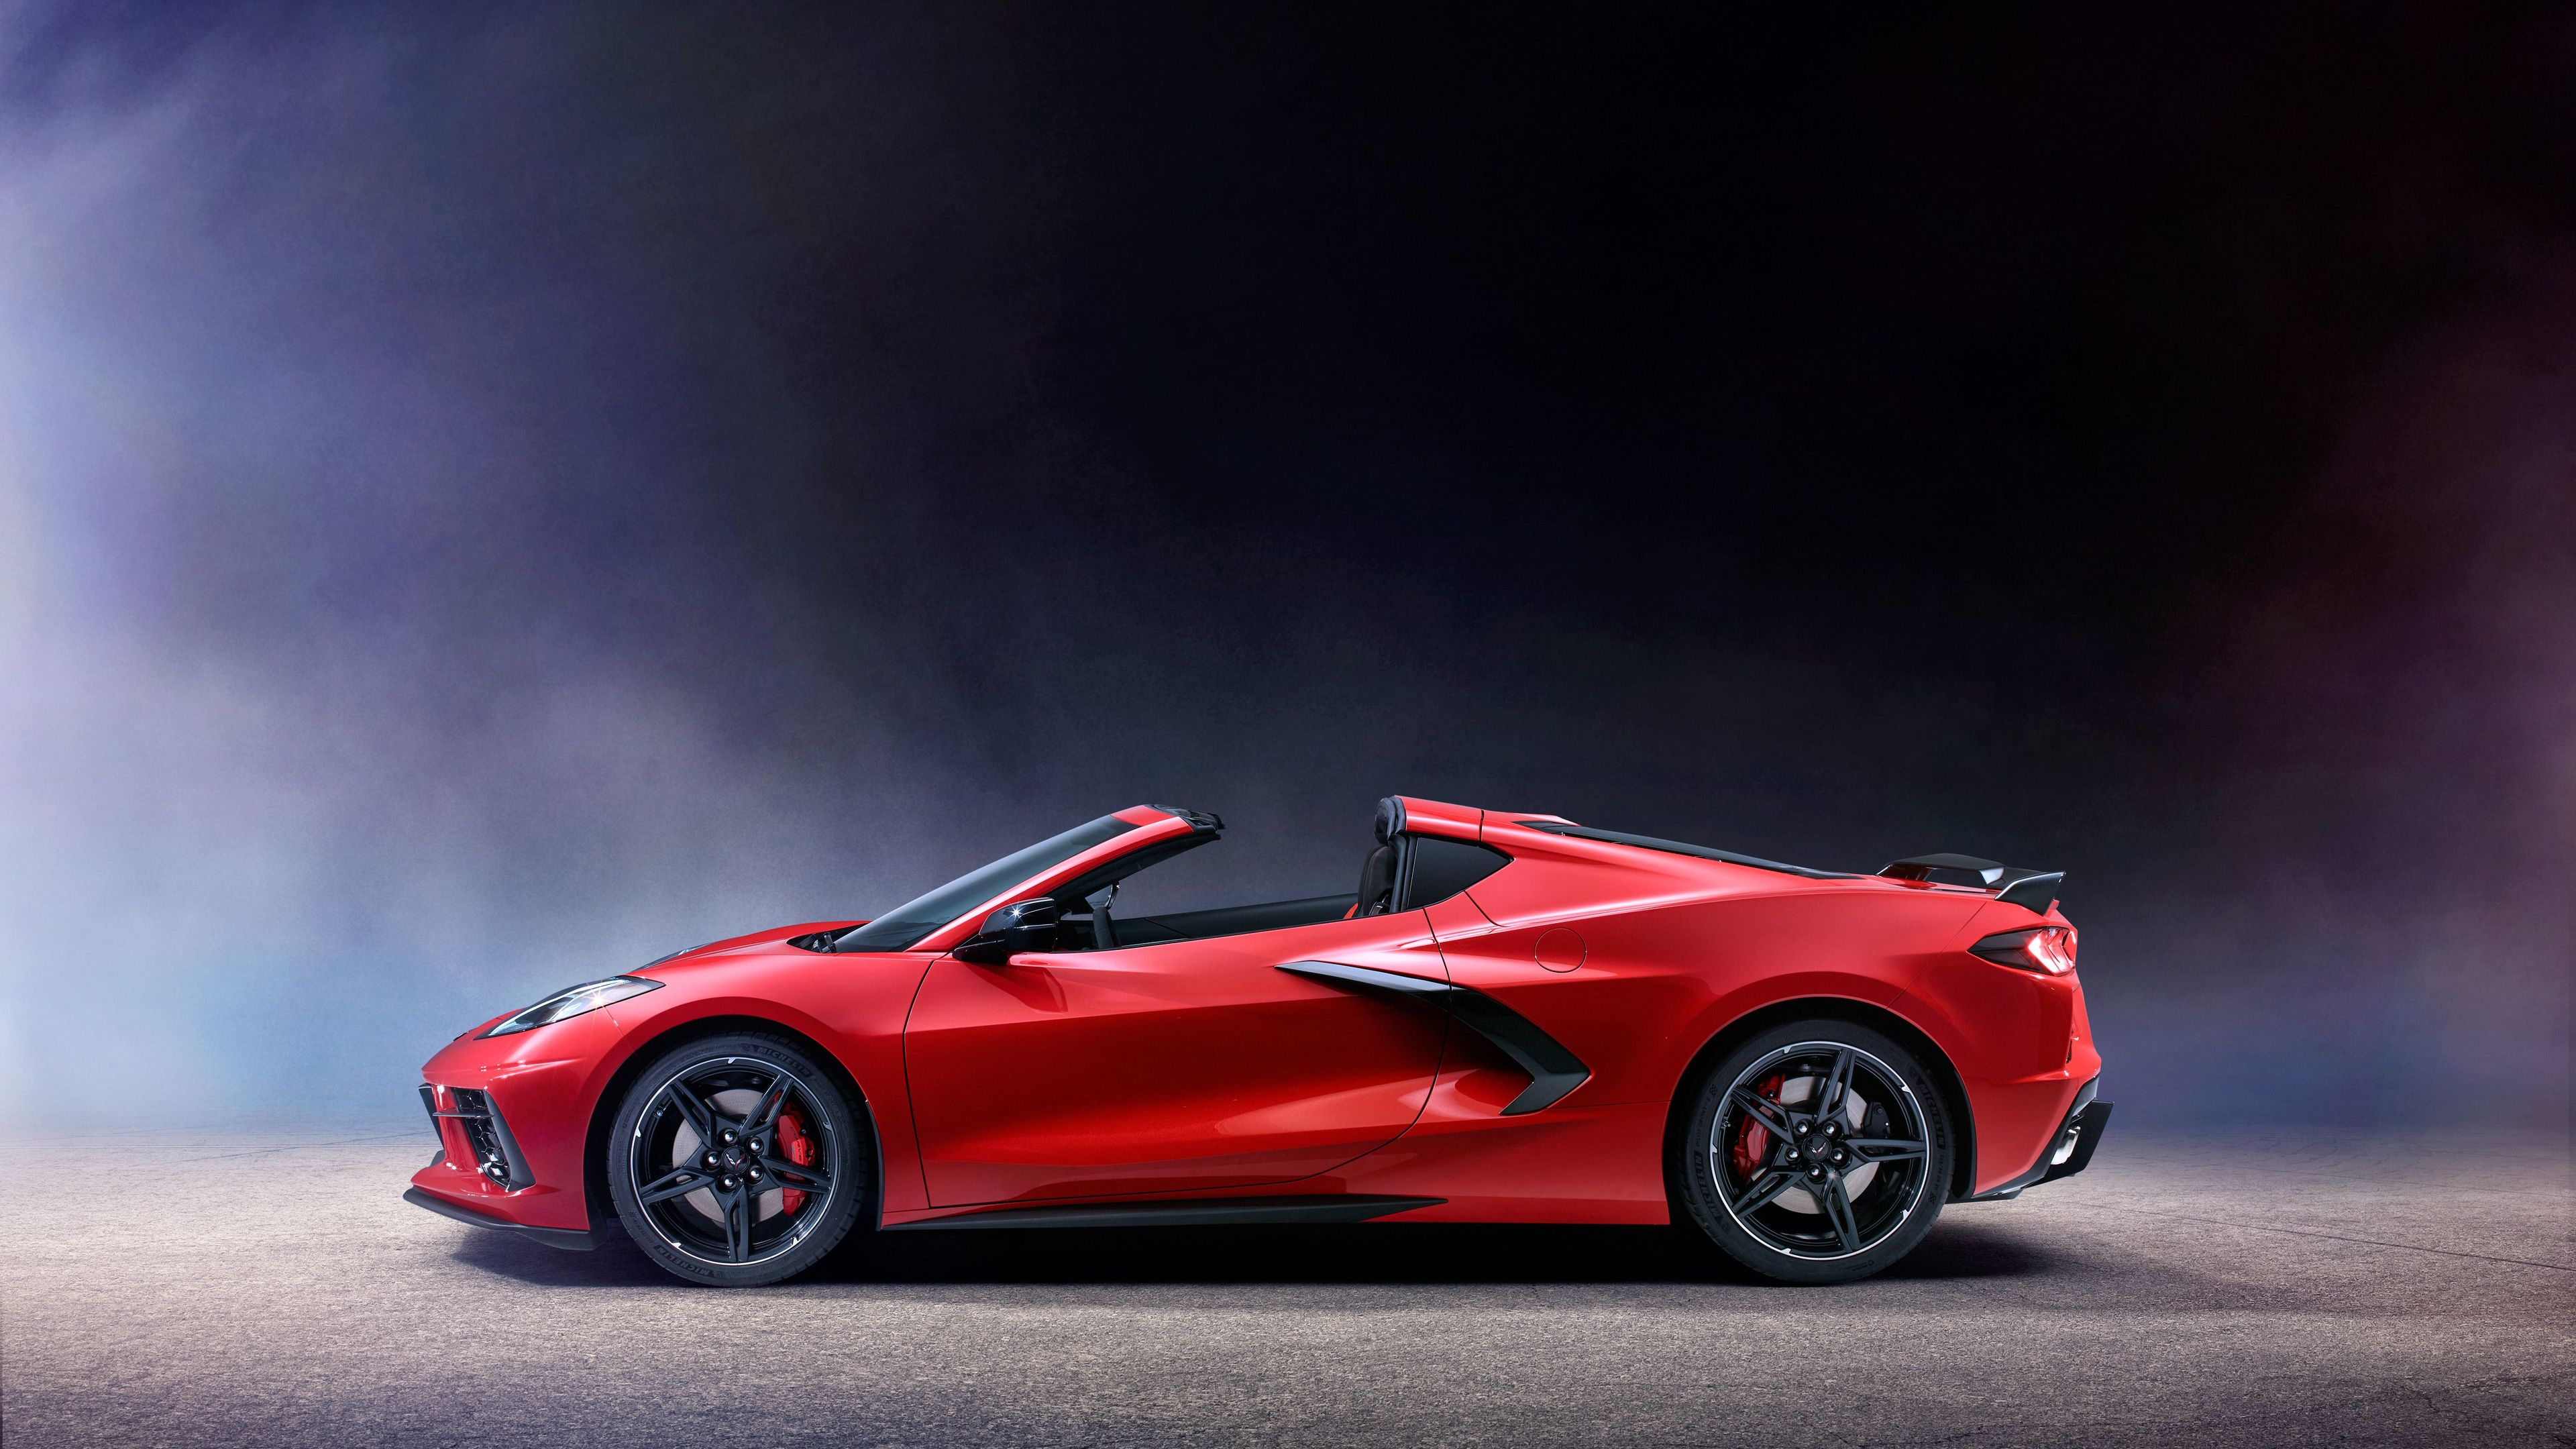 2020 chevrolet corvette stingray c8 new 1565054932 - 2020 Chevrolet Corvette Stingray C8 New - hd-wallpapers, corvette wallpapers, chevrolet wallpapers, chevrolet corvette stingray c8 wallpapers, cars wallpapers, 8k wallpapers, 5k wallpapers, 4k-wallpapers, 2020 cars wallpapers